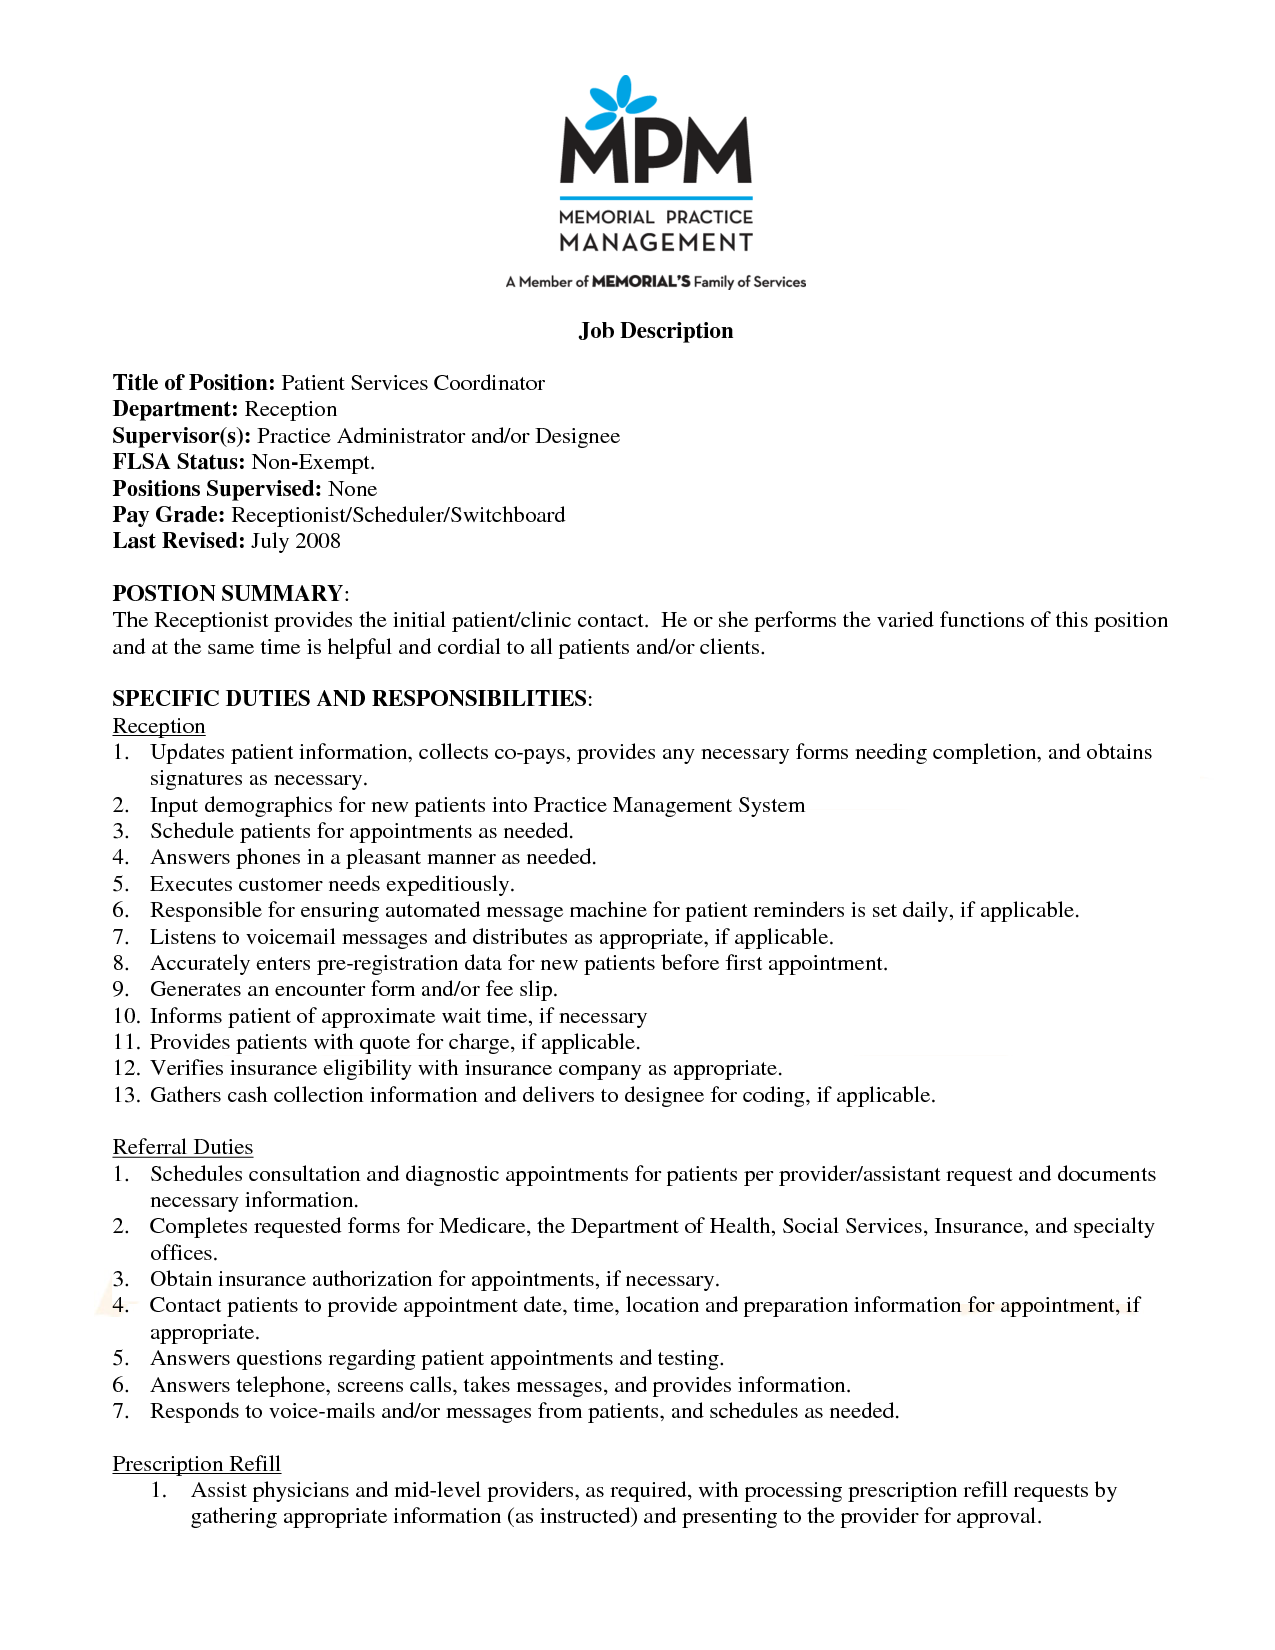 Patient Care Coordinator Resume Specific Duties And